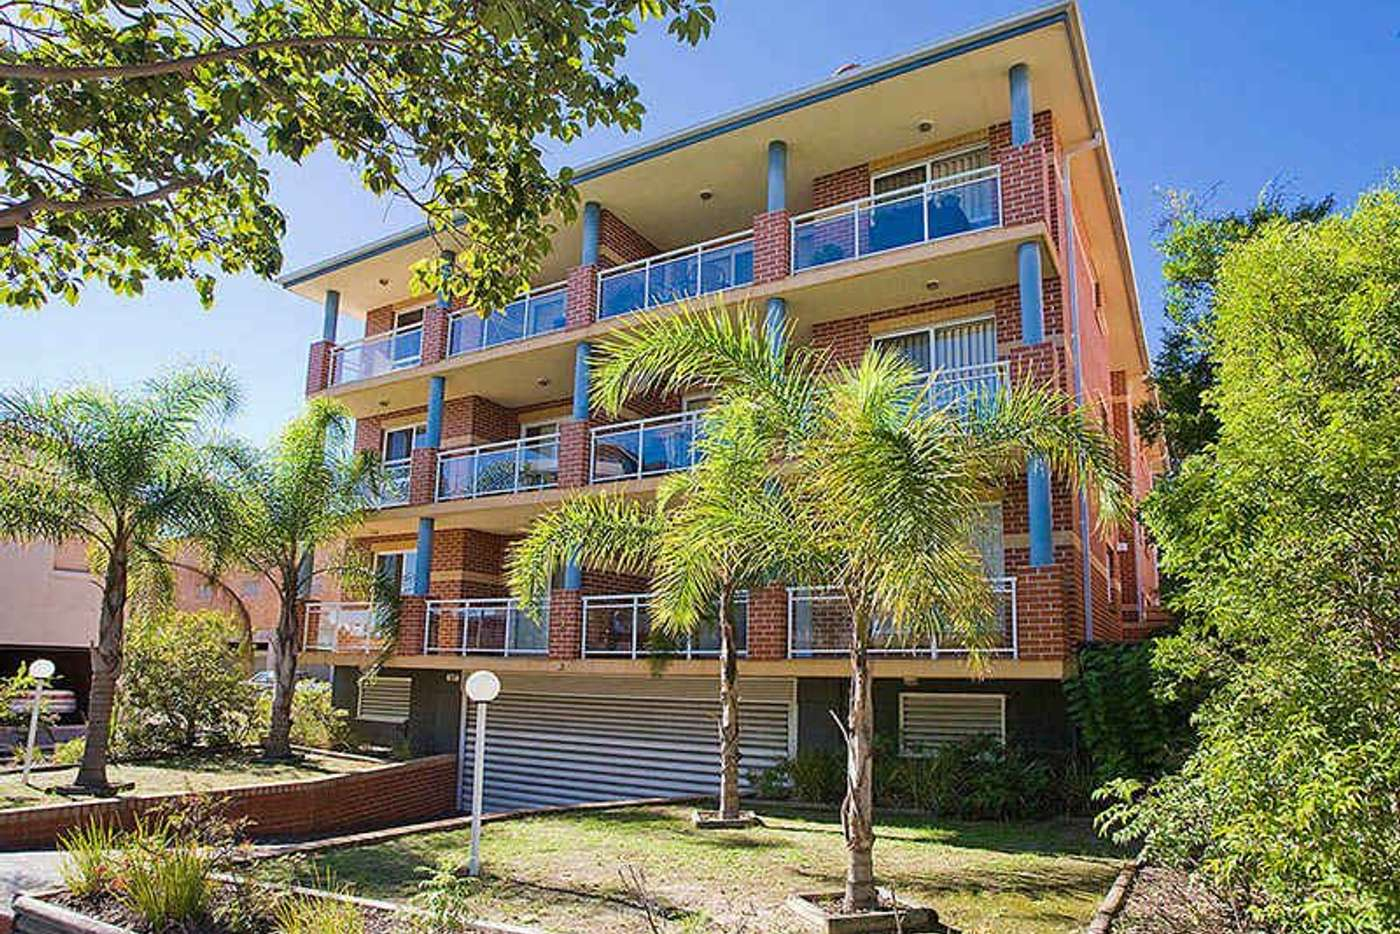 Main view of Homely unit listing, 7/2-4 Queens Road, Brighton-le-sands NSW 2216